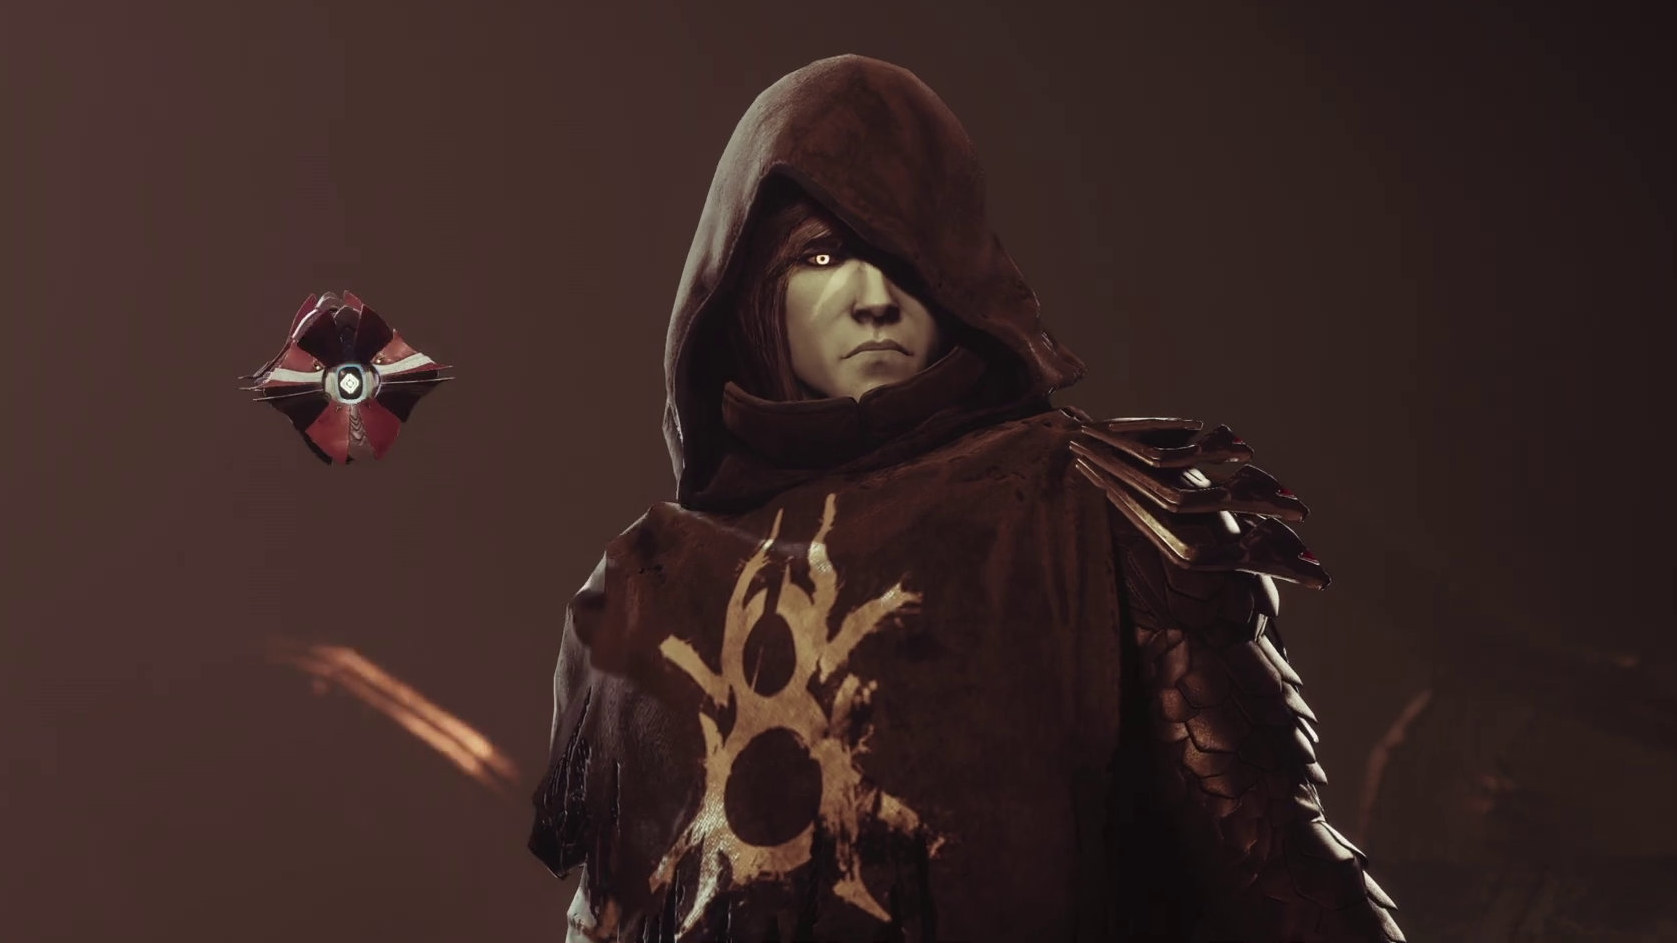 A Destiny 2 cinematic still showing Crow, the Guardian raised from Uldren Sov, and his Ghost.